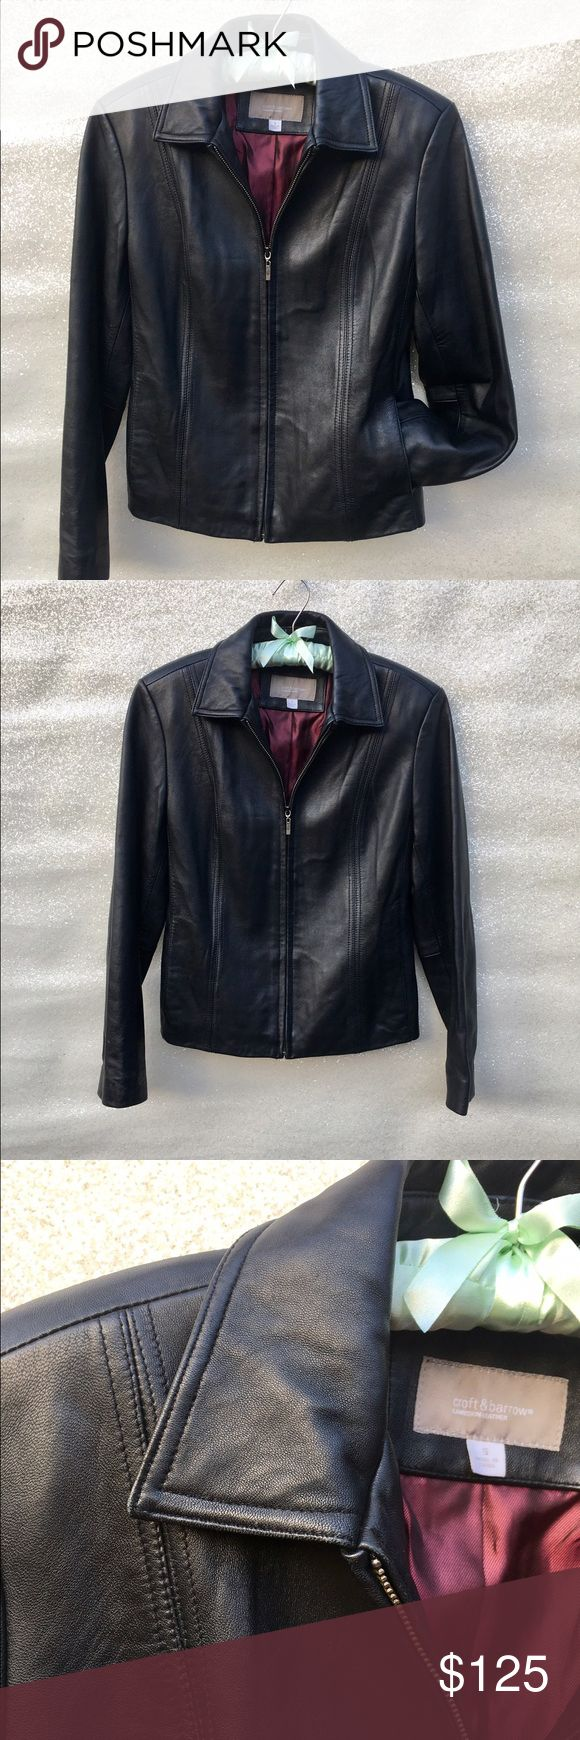 Black Croft & Barrow Lambskin Leather Jacket Sleek black lambskin leather jacket with pockets, zipper & wine-colored nylon/polyester lining. Fits like small/medium 4/6. croft & barrow Jackets & Coats Utility Jackets